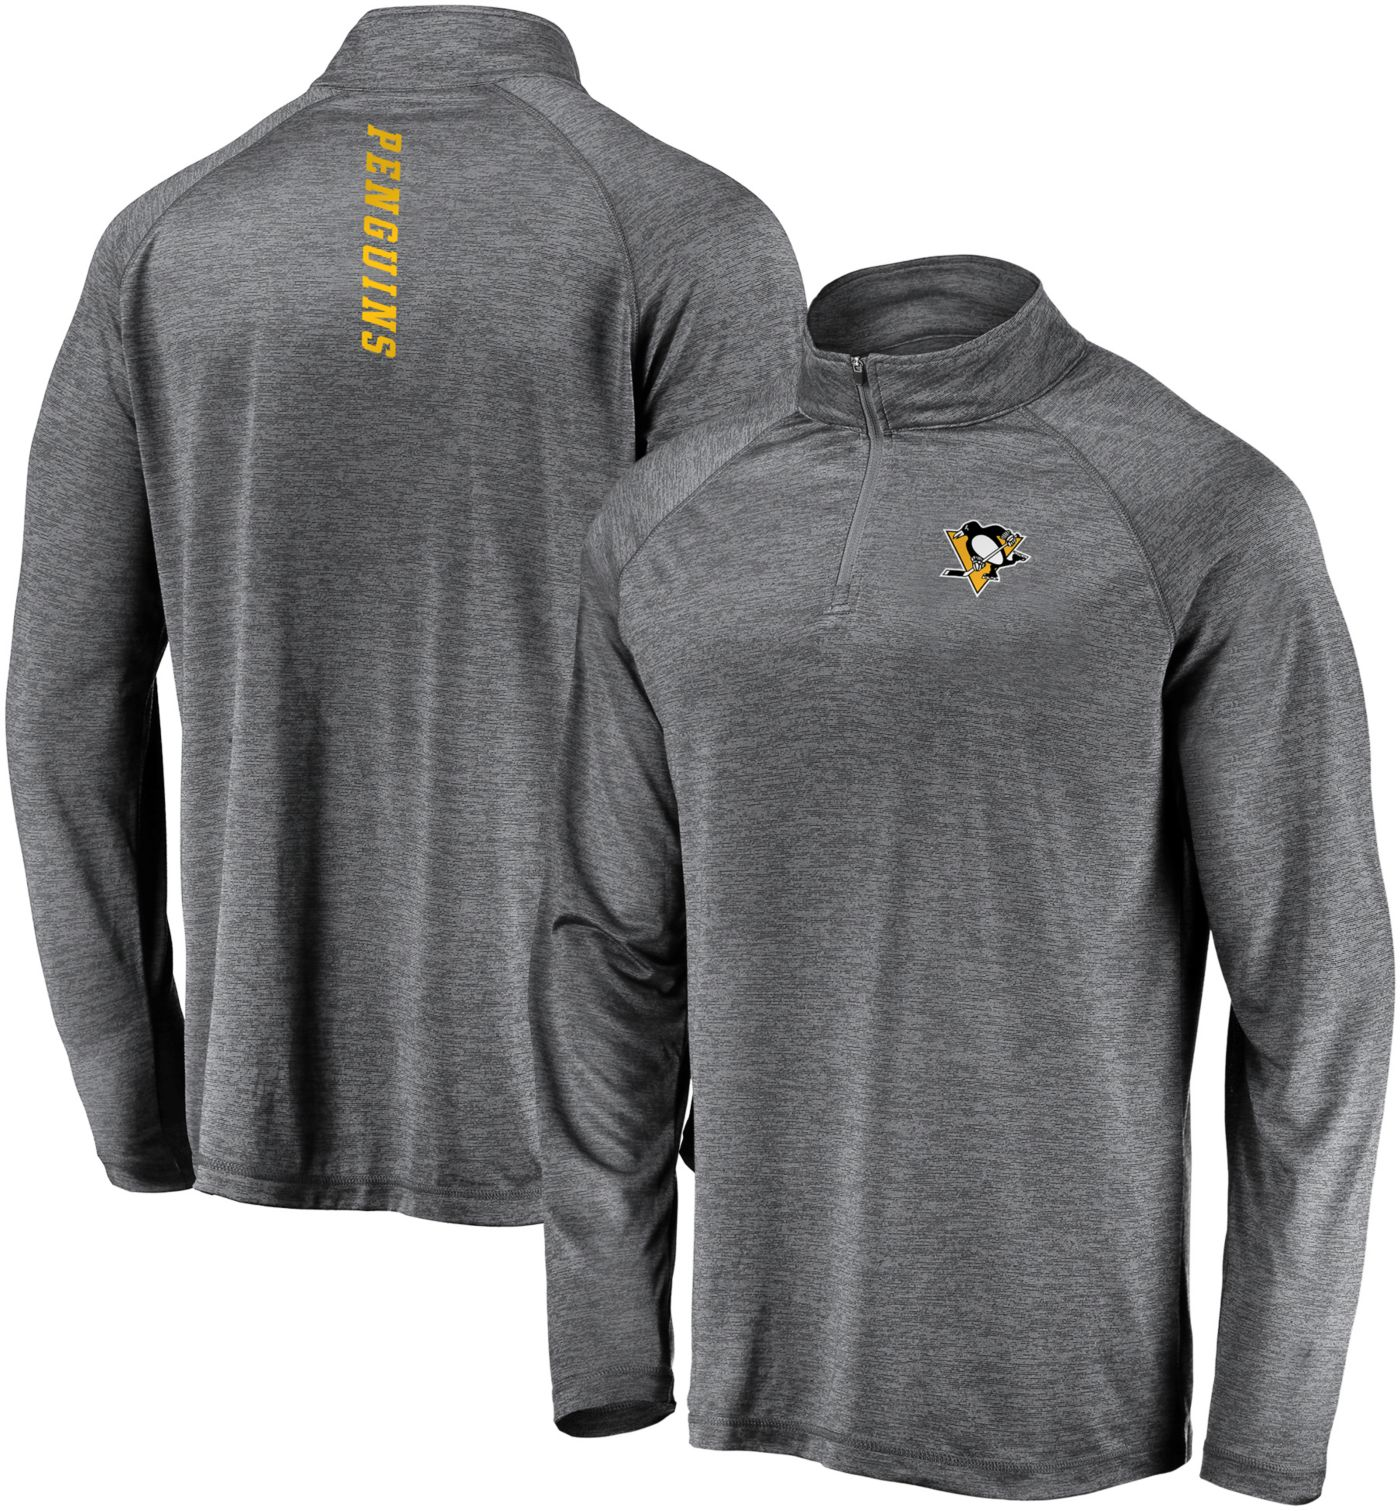 NHL Men's Pittsburgh Penguins Contend Heather Grey Quarter-Zip Pullover